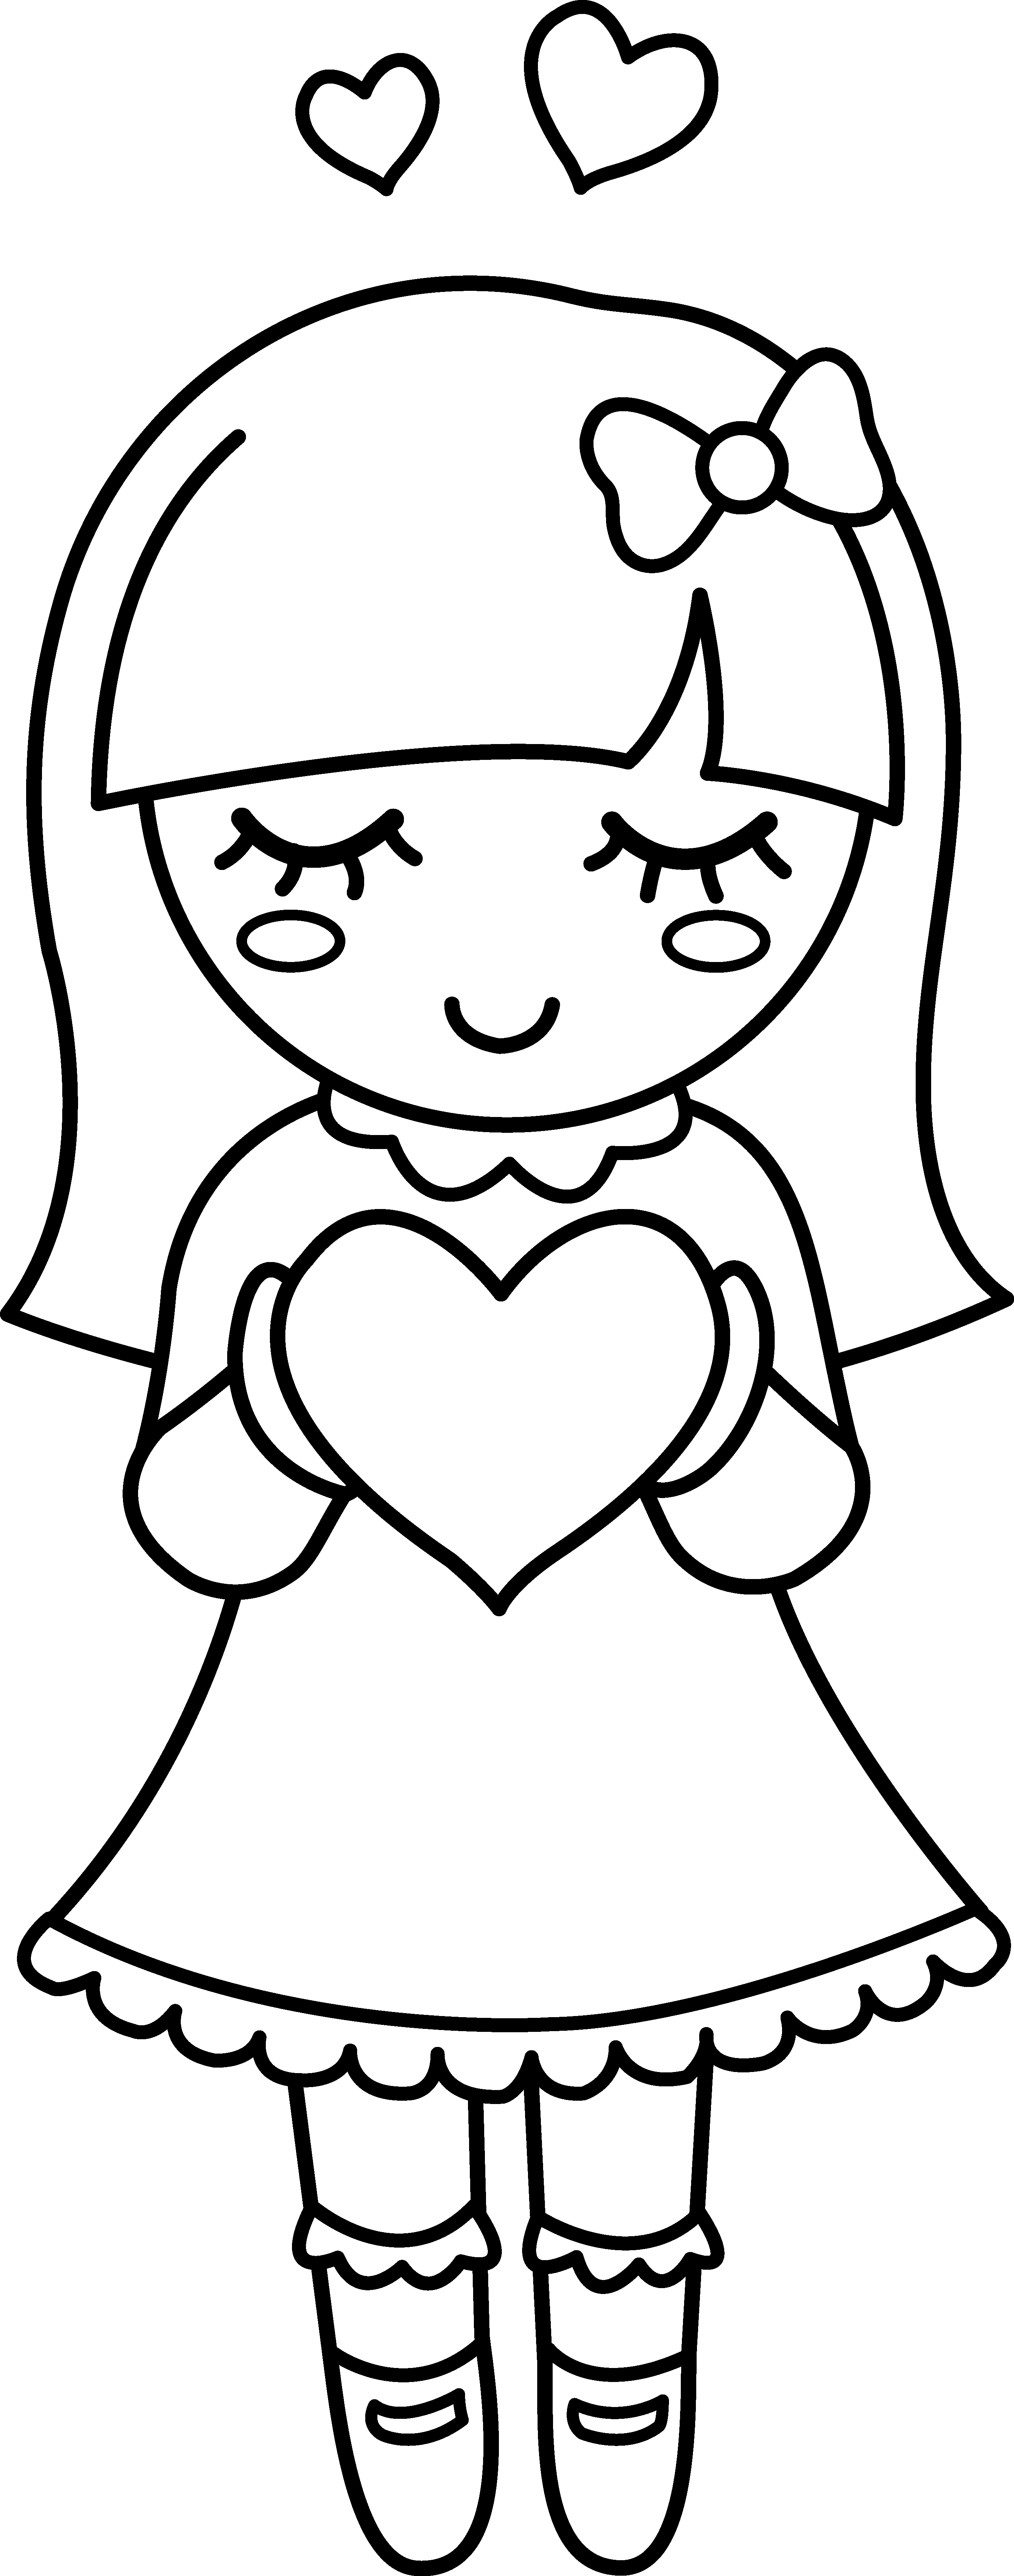 Noodles clipart black and white. Sweetclipart com cute valentine